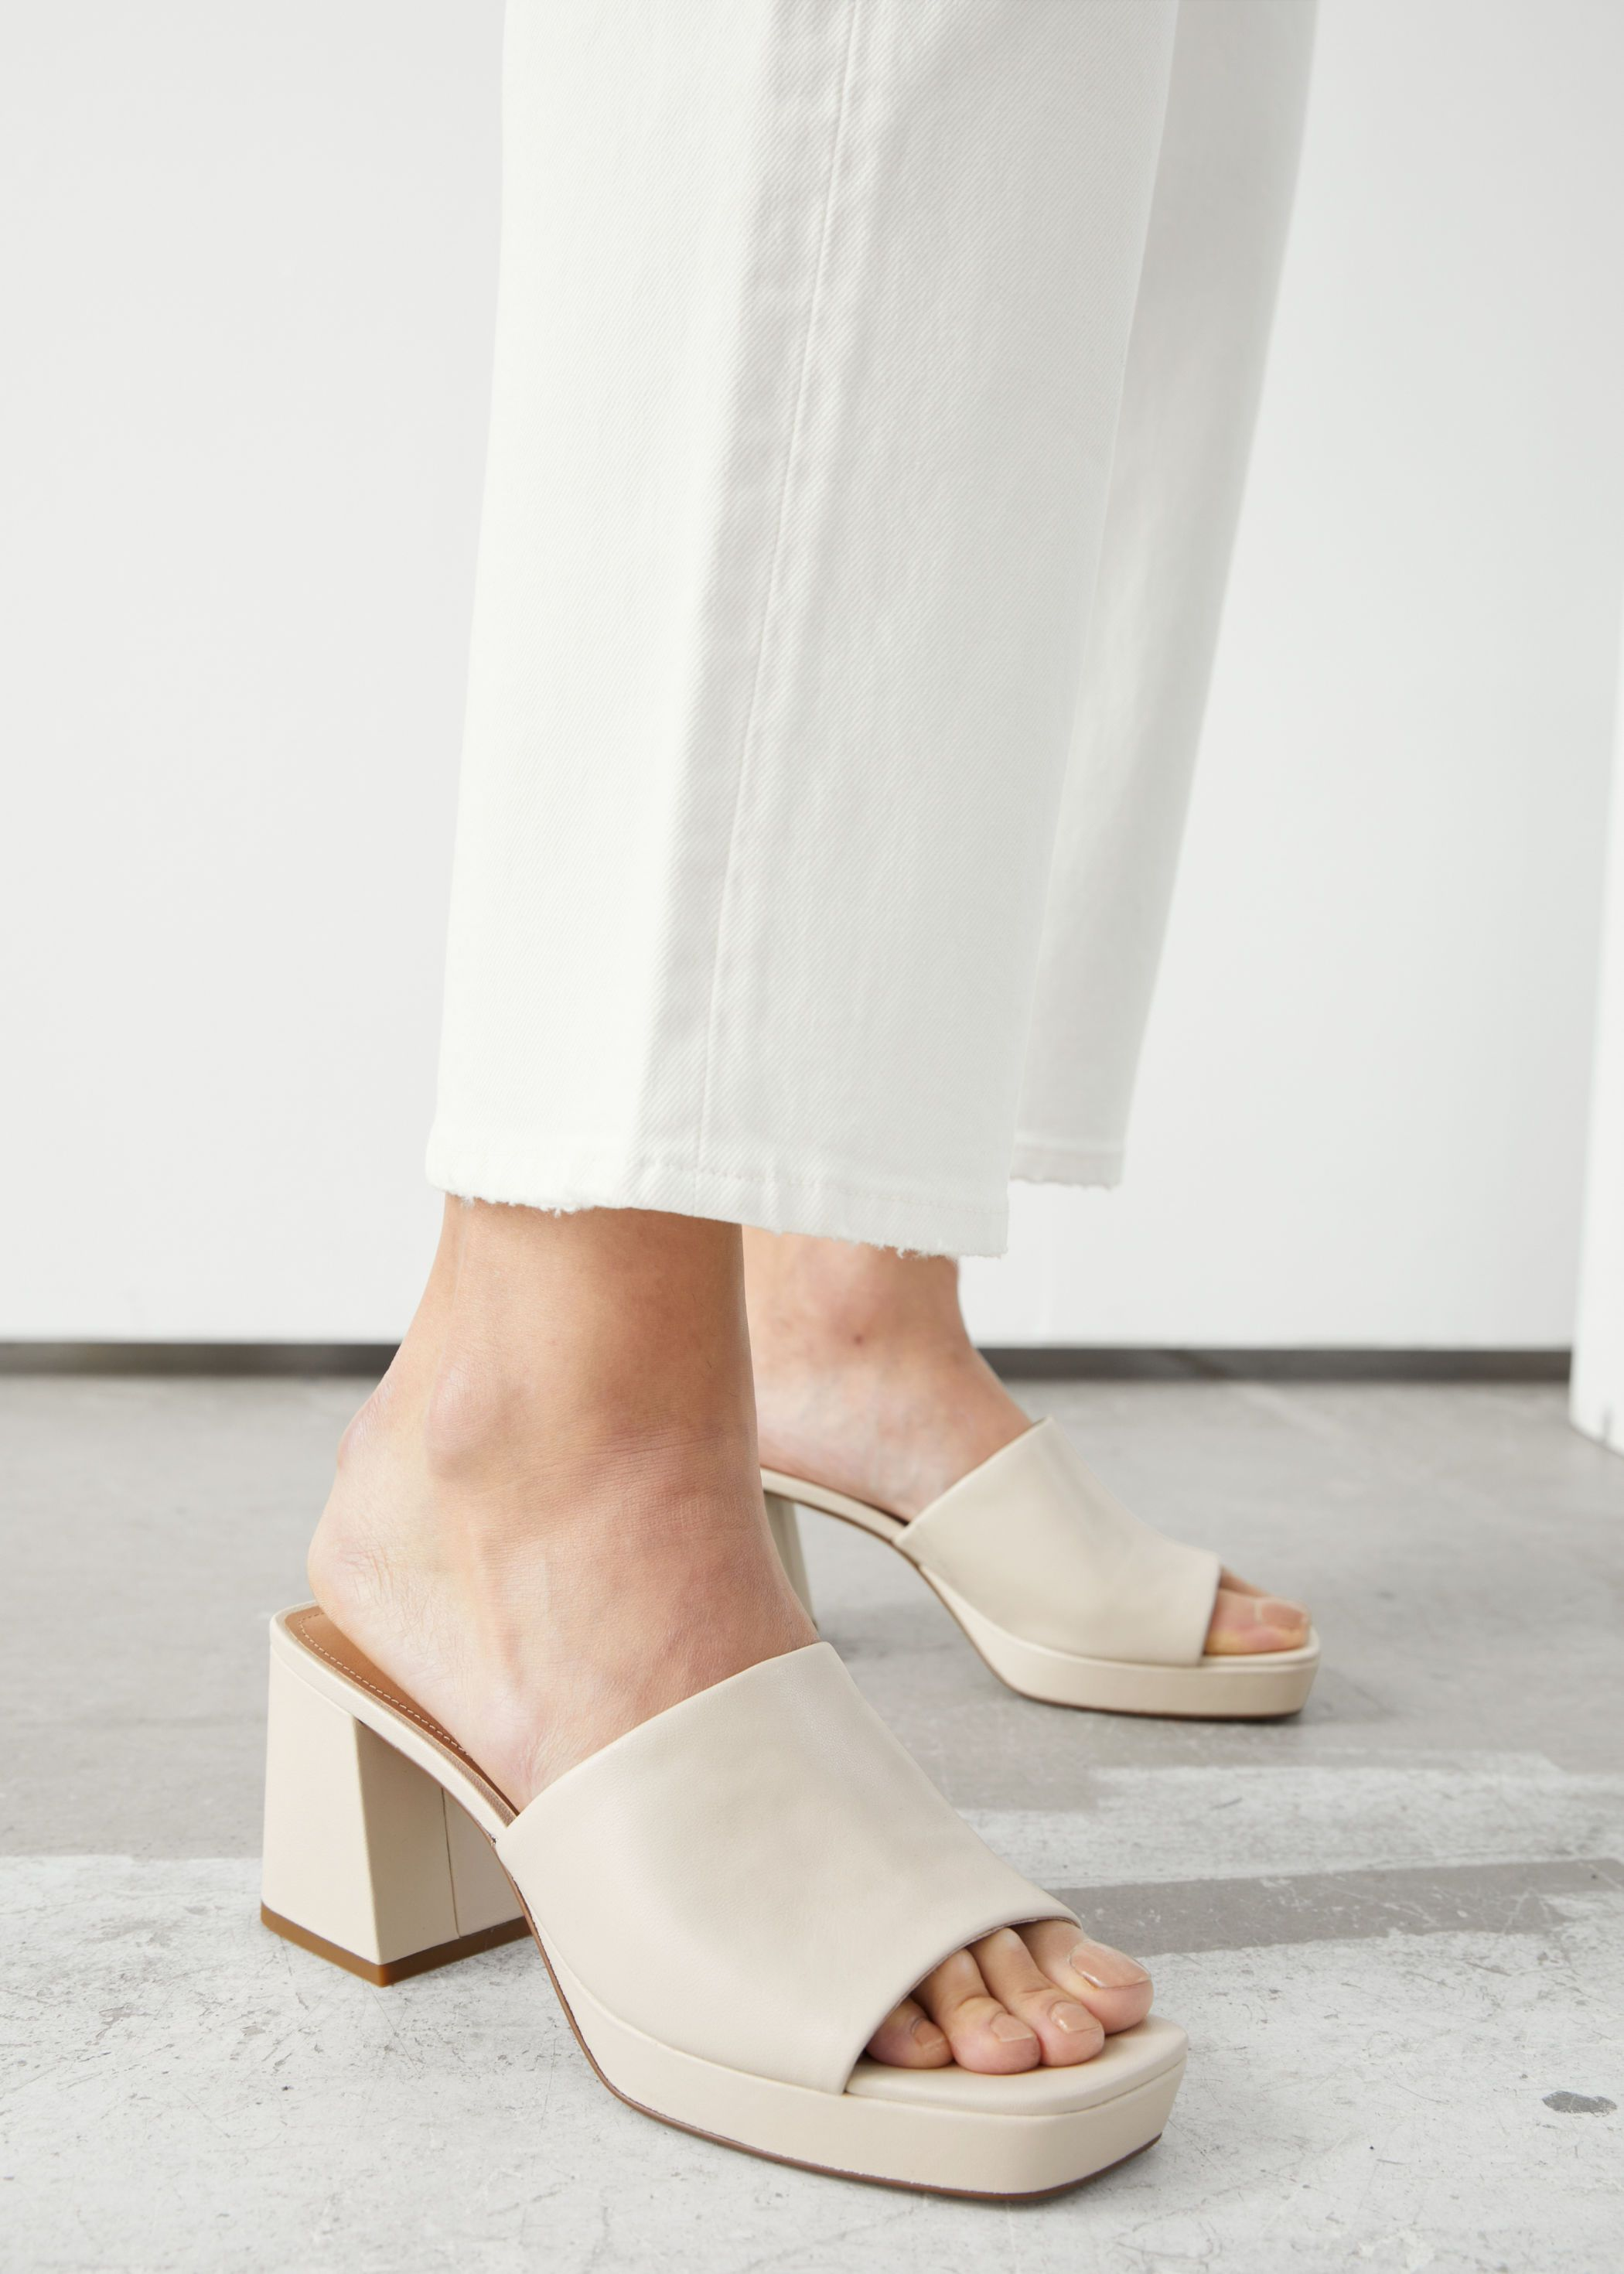 Leather Heeled Platform Mules in 2020